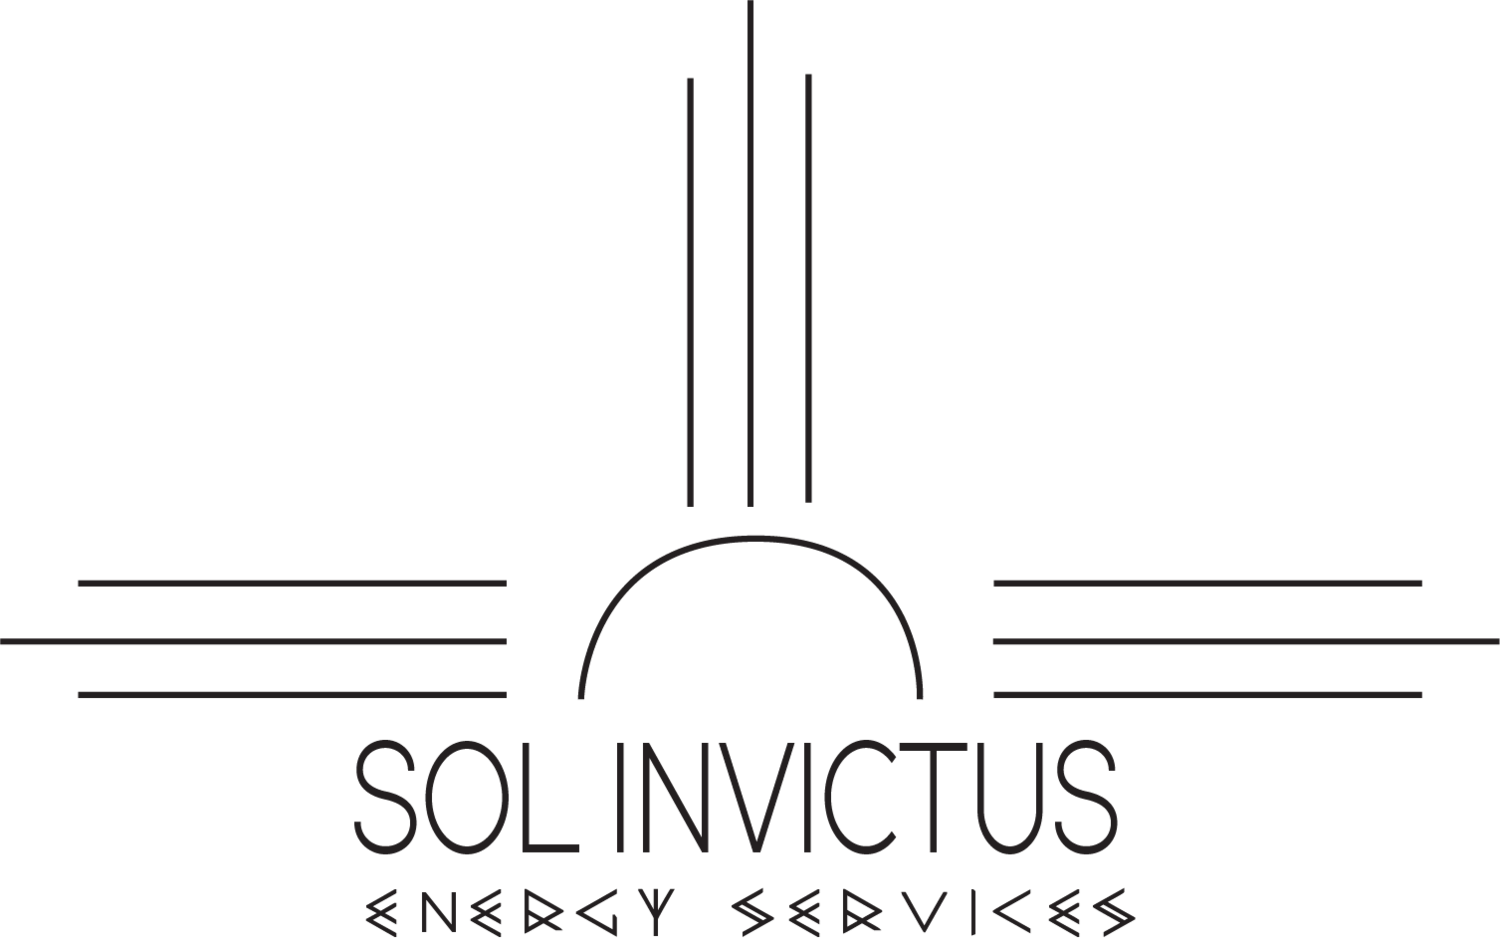 Sol Invictus Energy Services